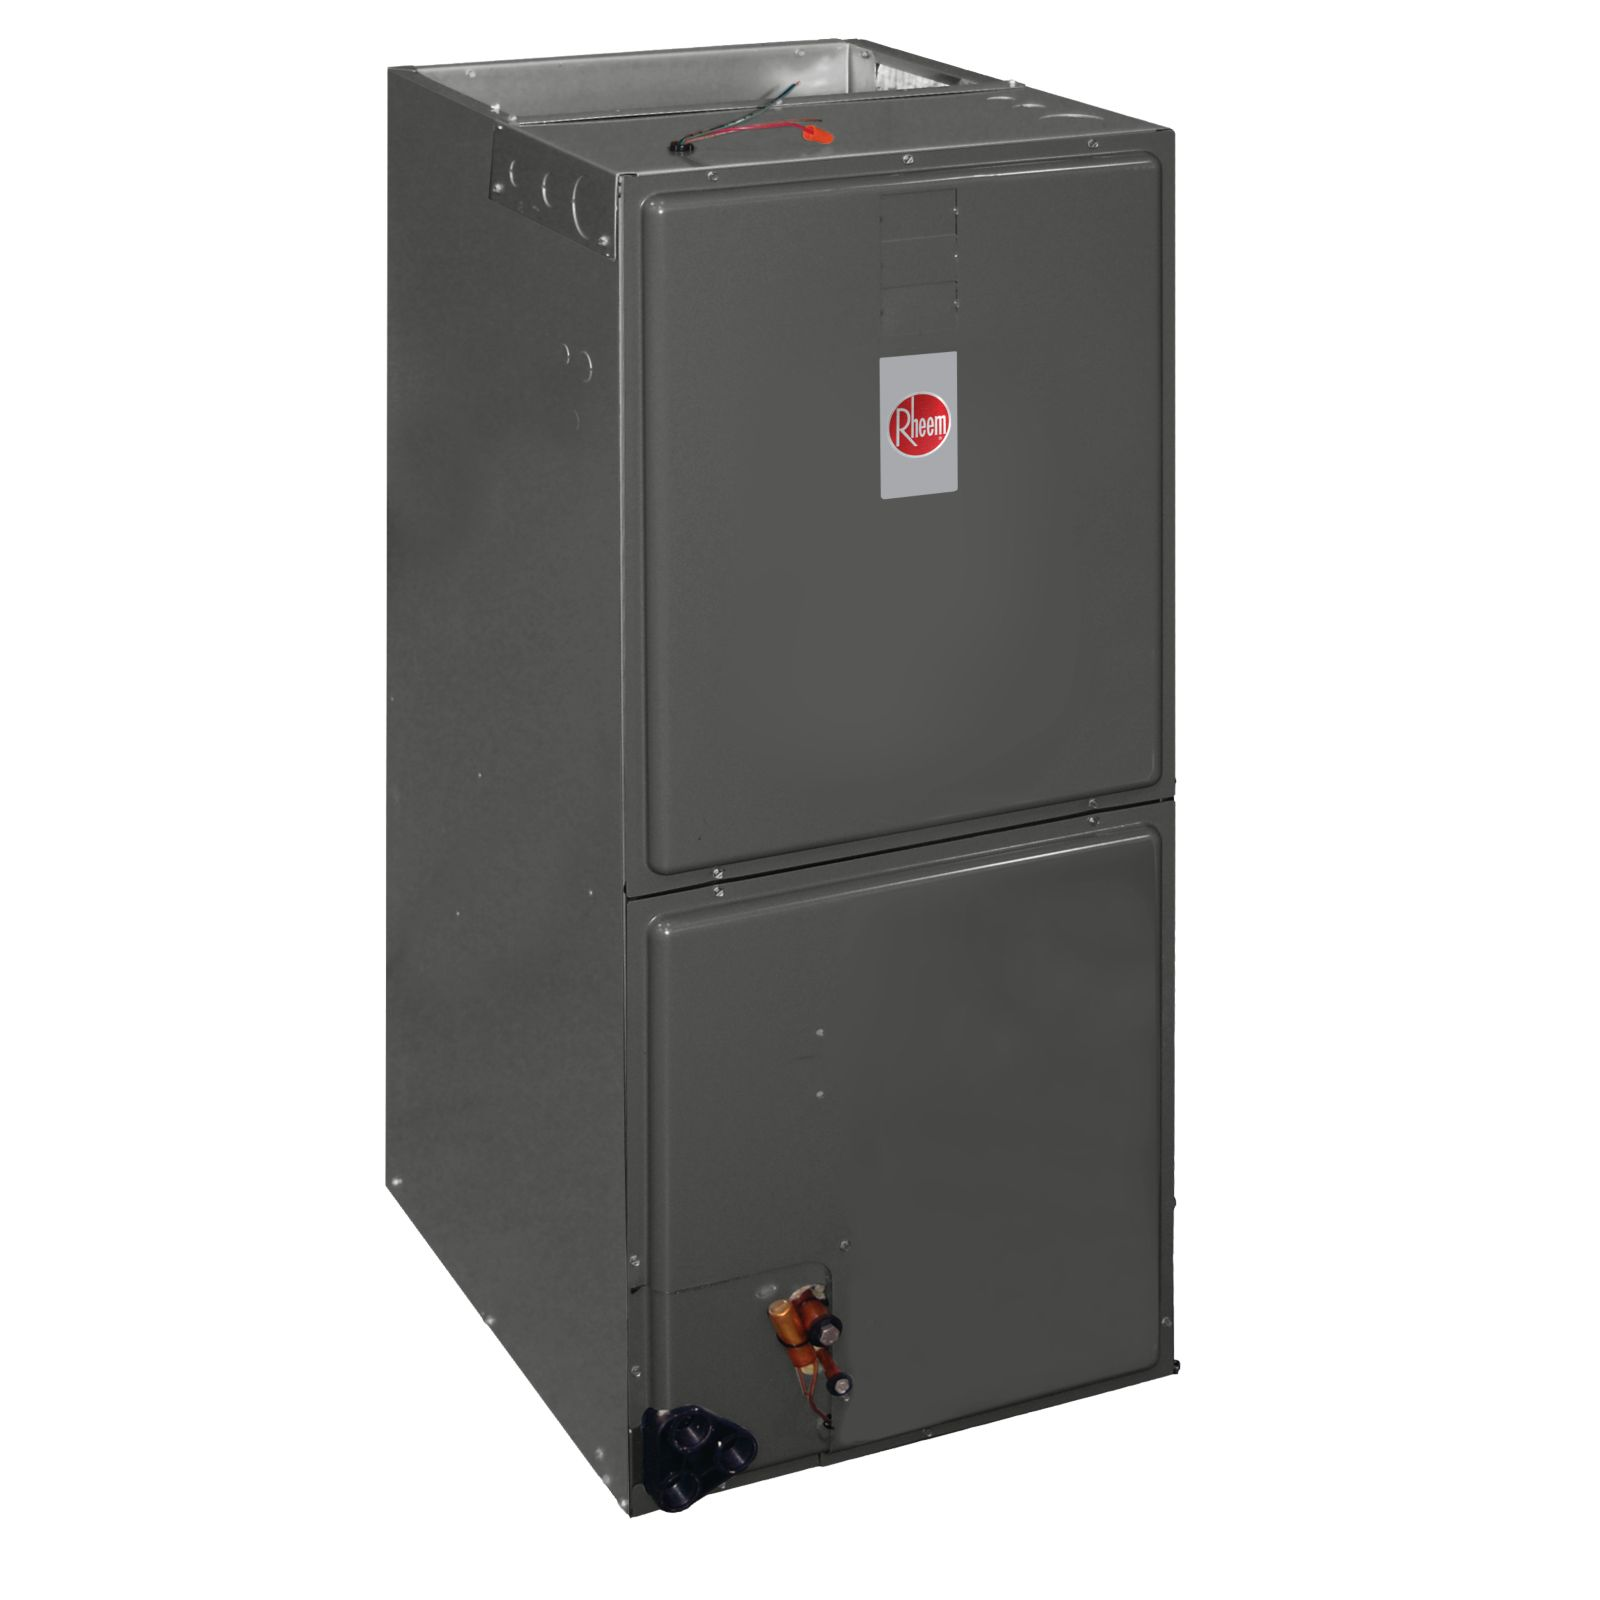 Rheem rhll hm3617ja rhll series 3 ton multiposition high view full size in new tab cheapraybanclubmaster Choice Image